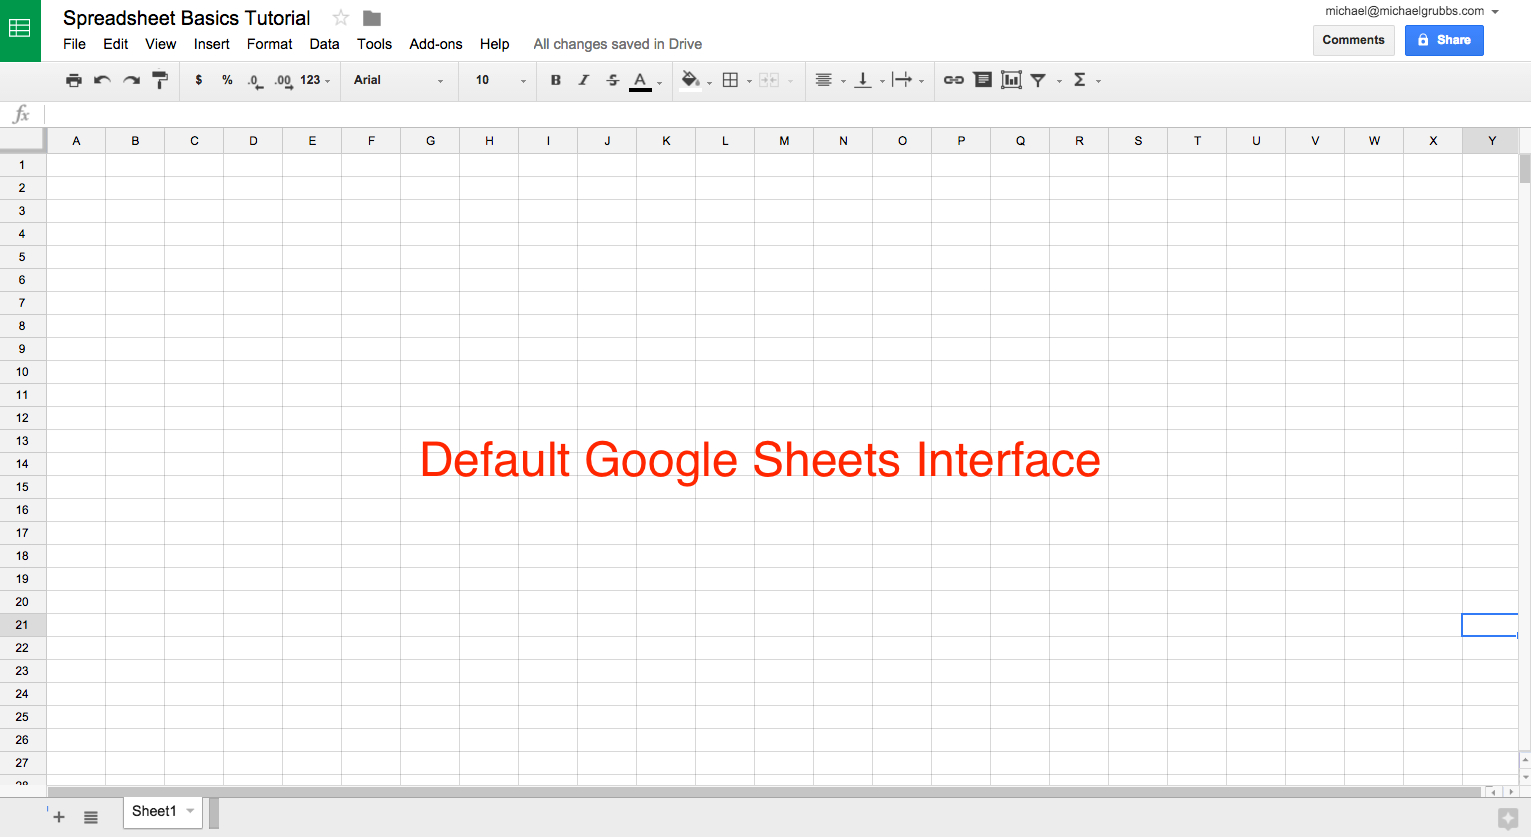 How Do I Make A Spreadsheet In Word With Google Sheets 101: The Beginner's Guide To Online Spreadsheets  The